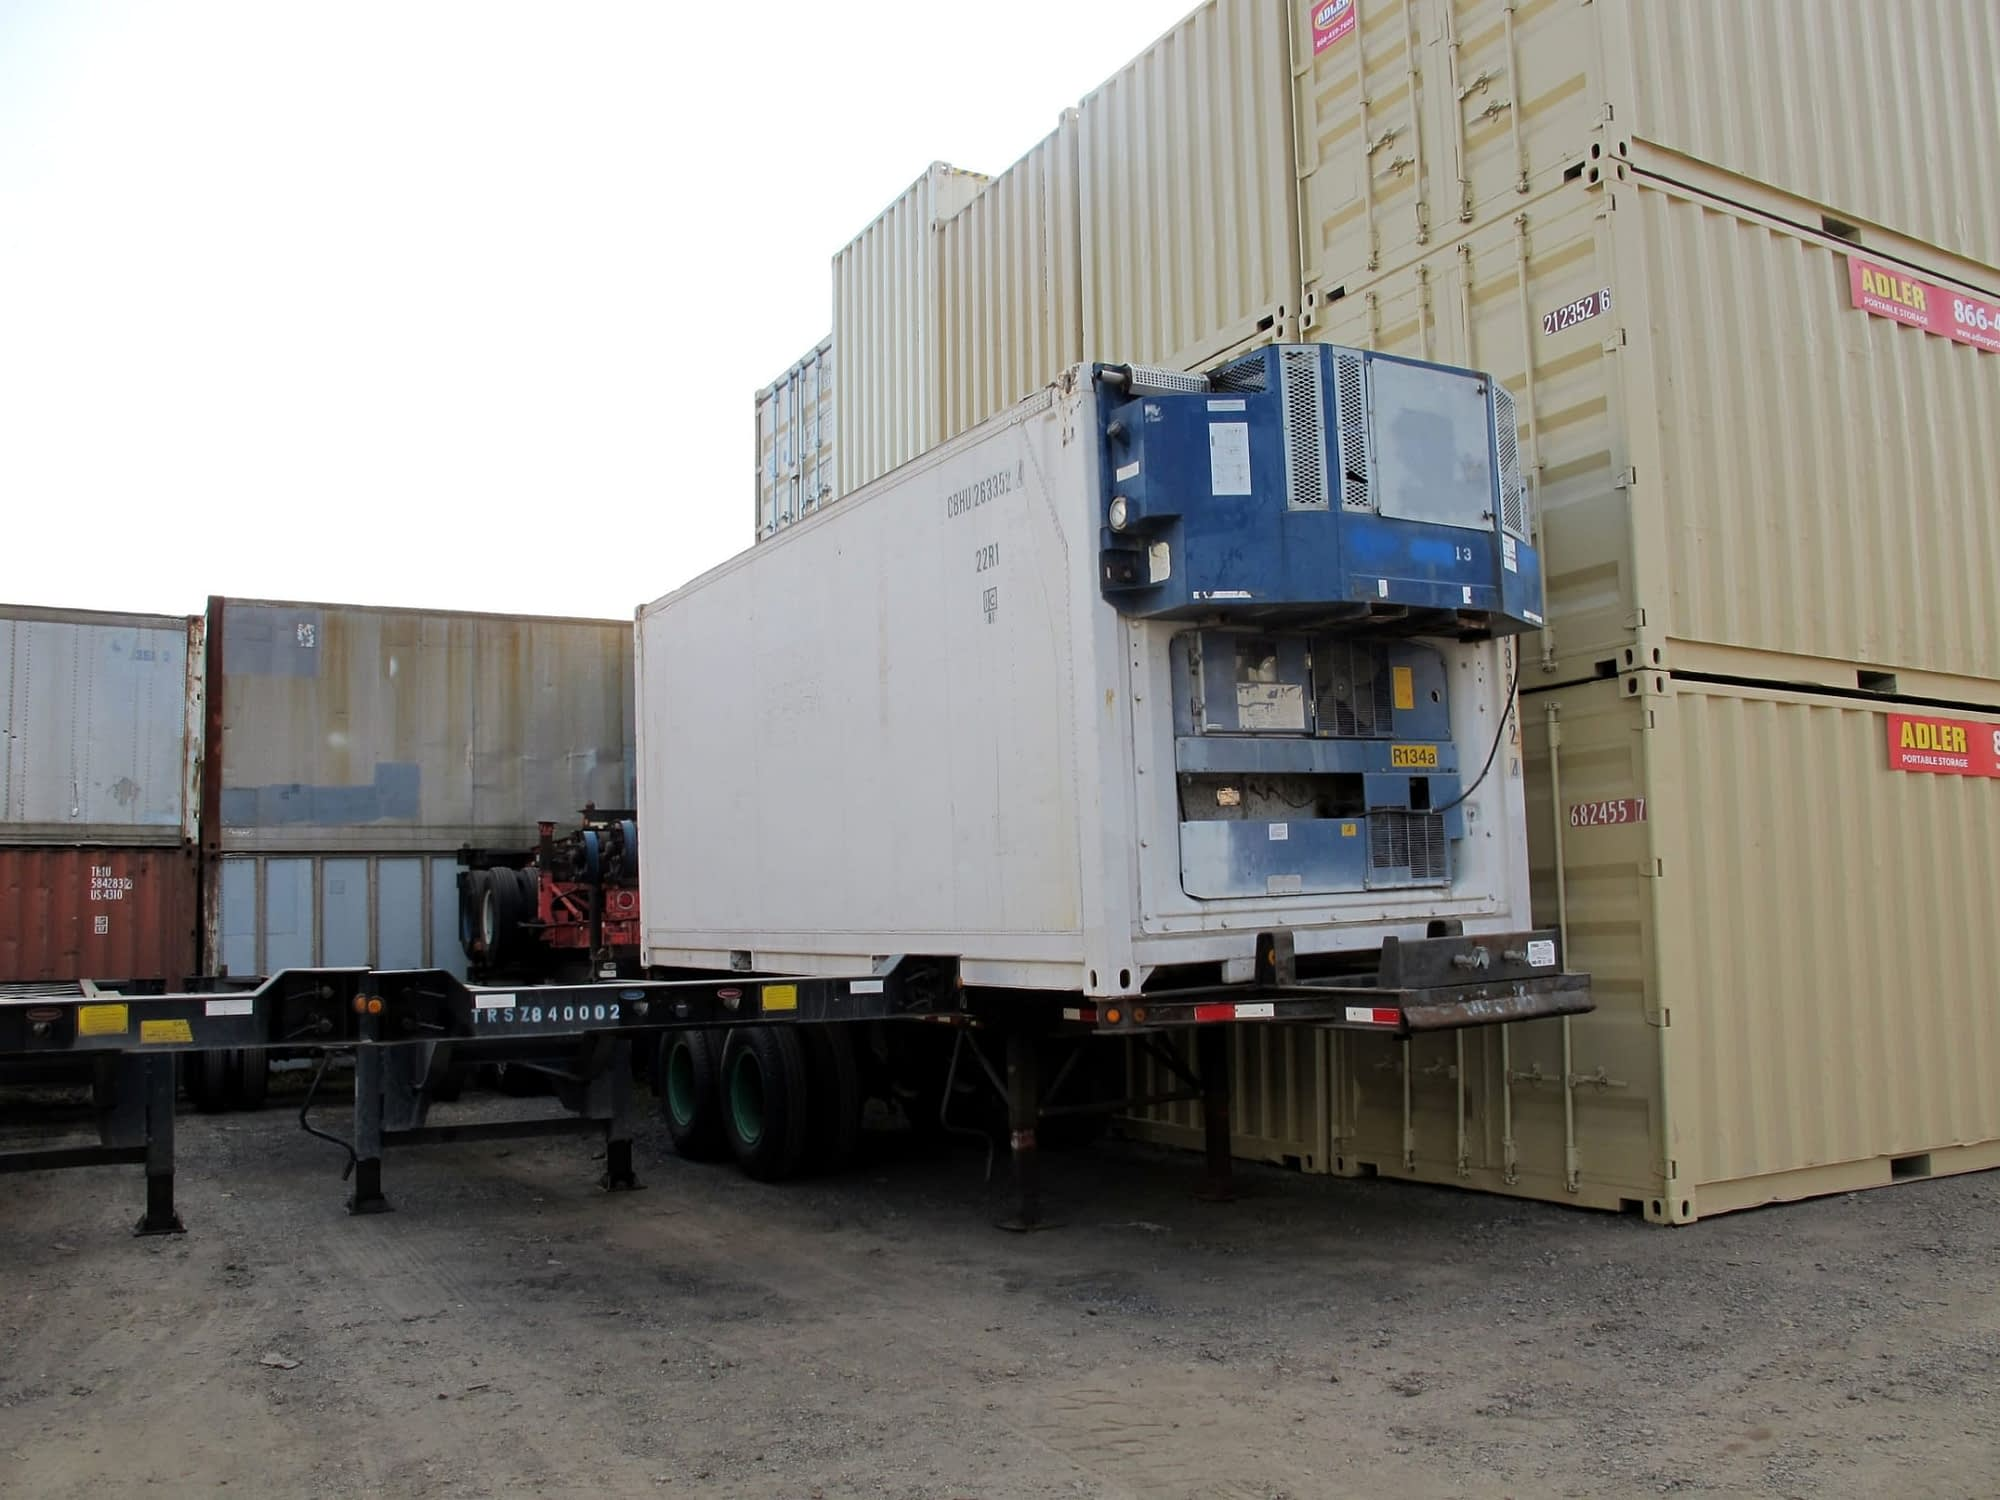 TRS sells and rents reefers and diesel gensets for export and domestic use